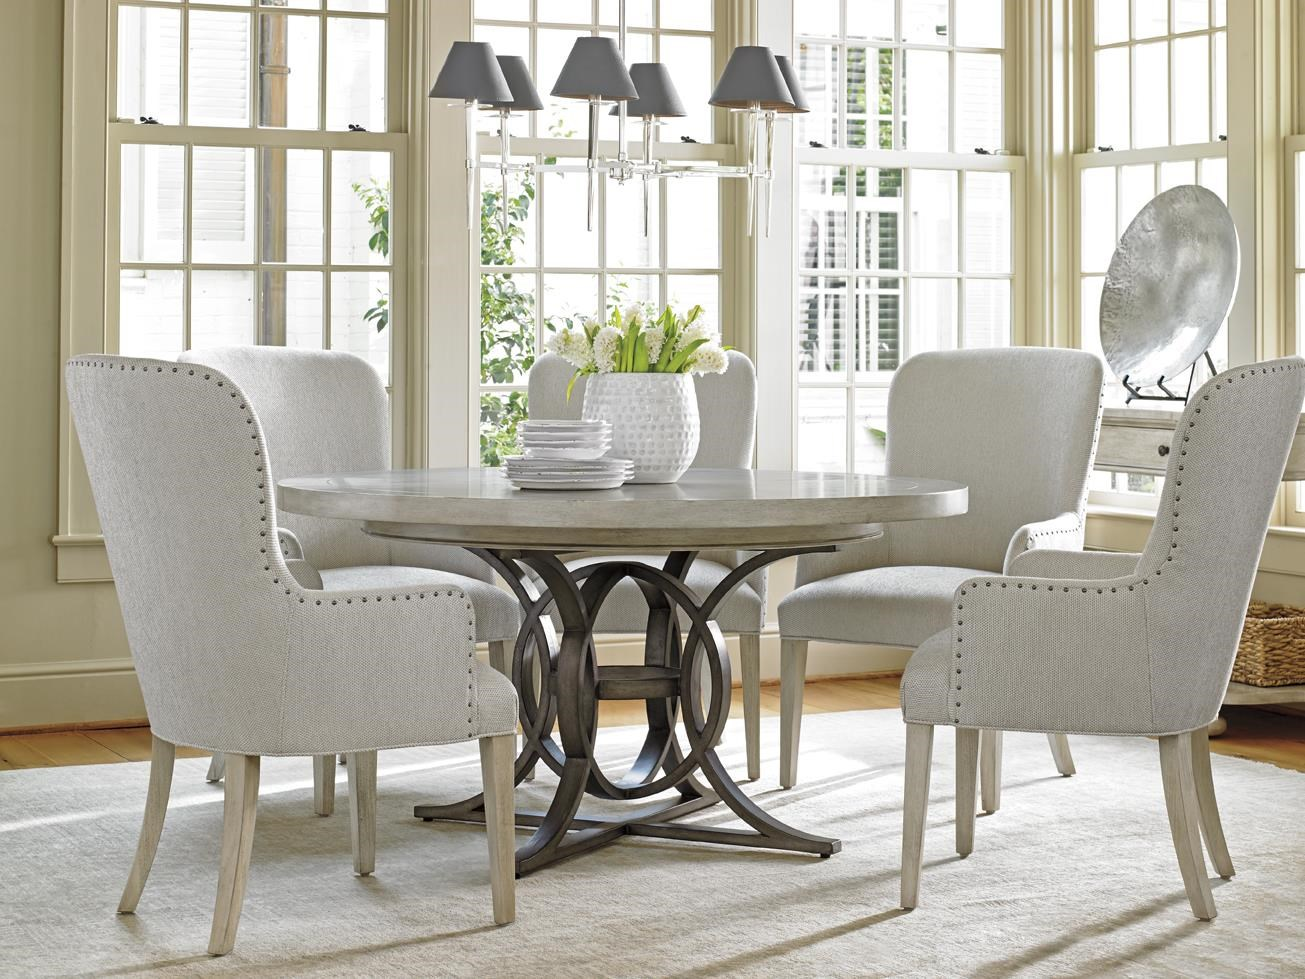 Oyster Bay Six Piece Dining Set With Calerton Table And Baxter Upholstered  Chairs By Lexington At Baeru0027s Furniture